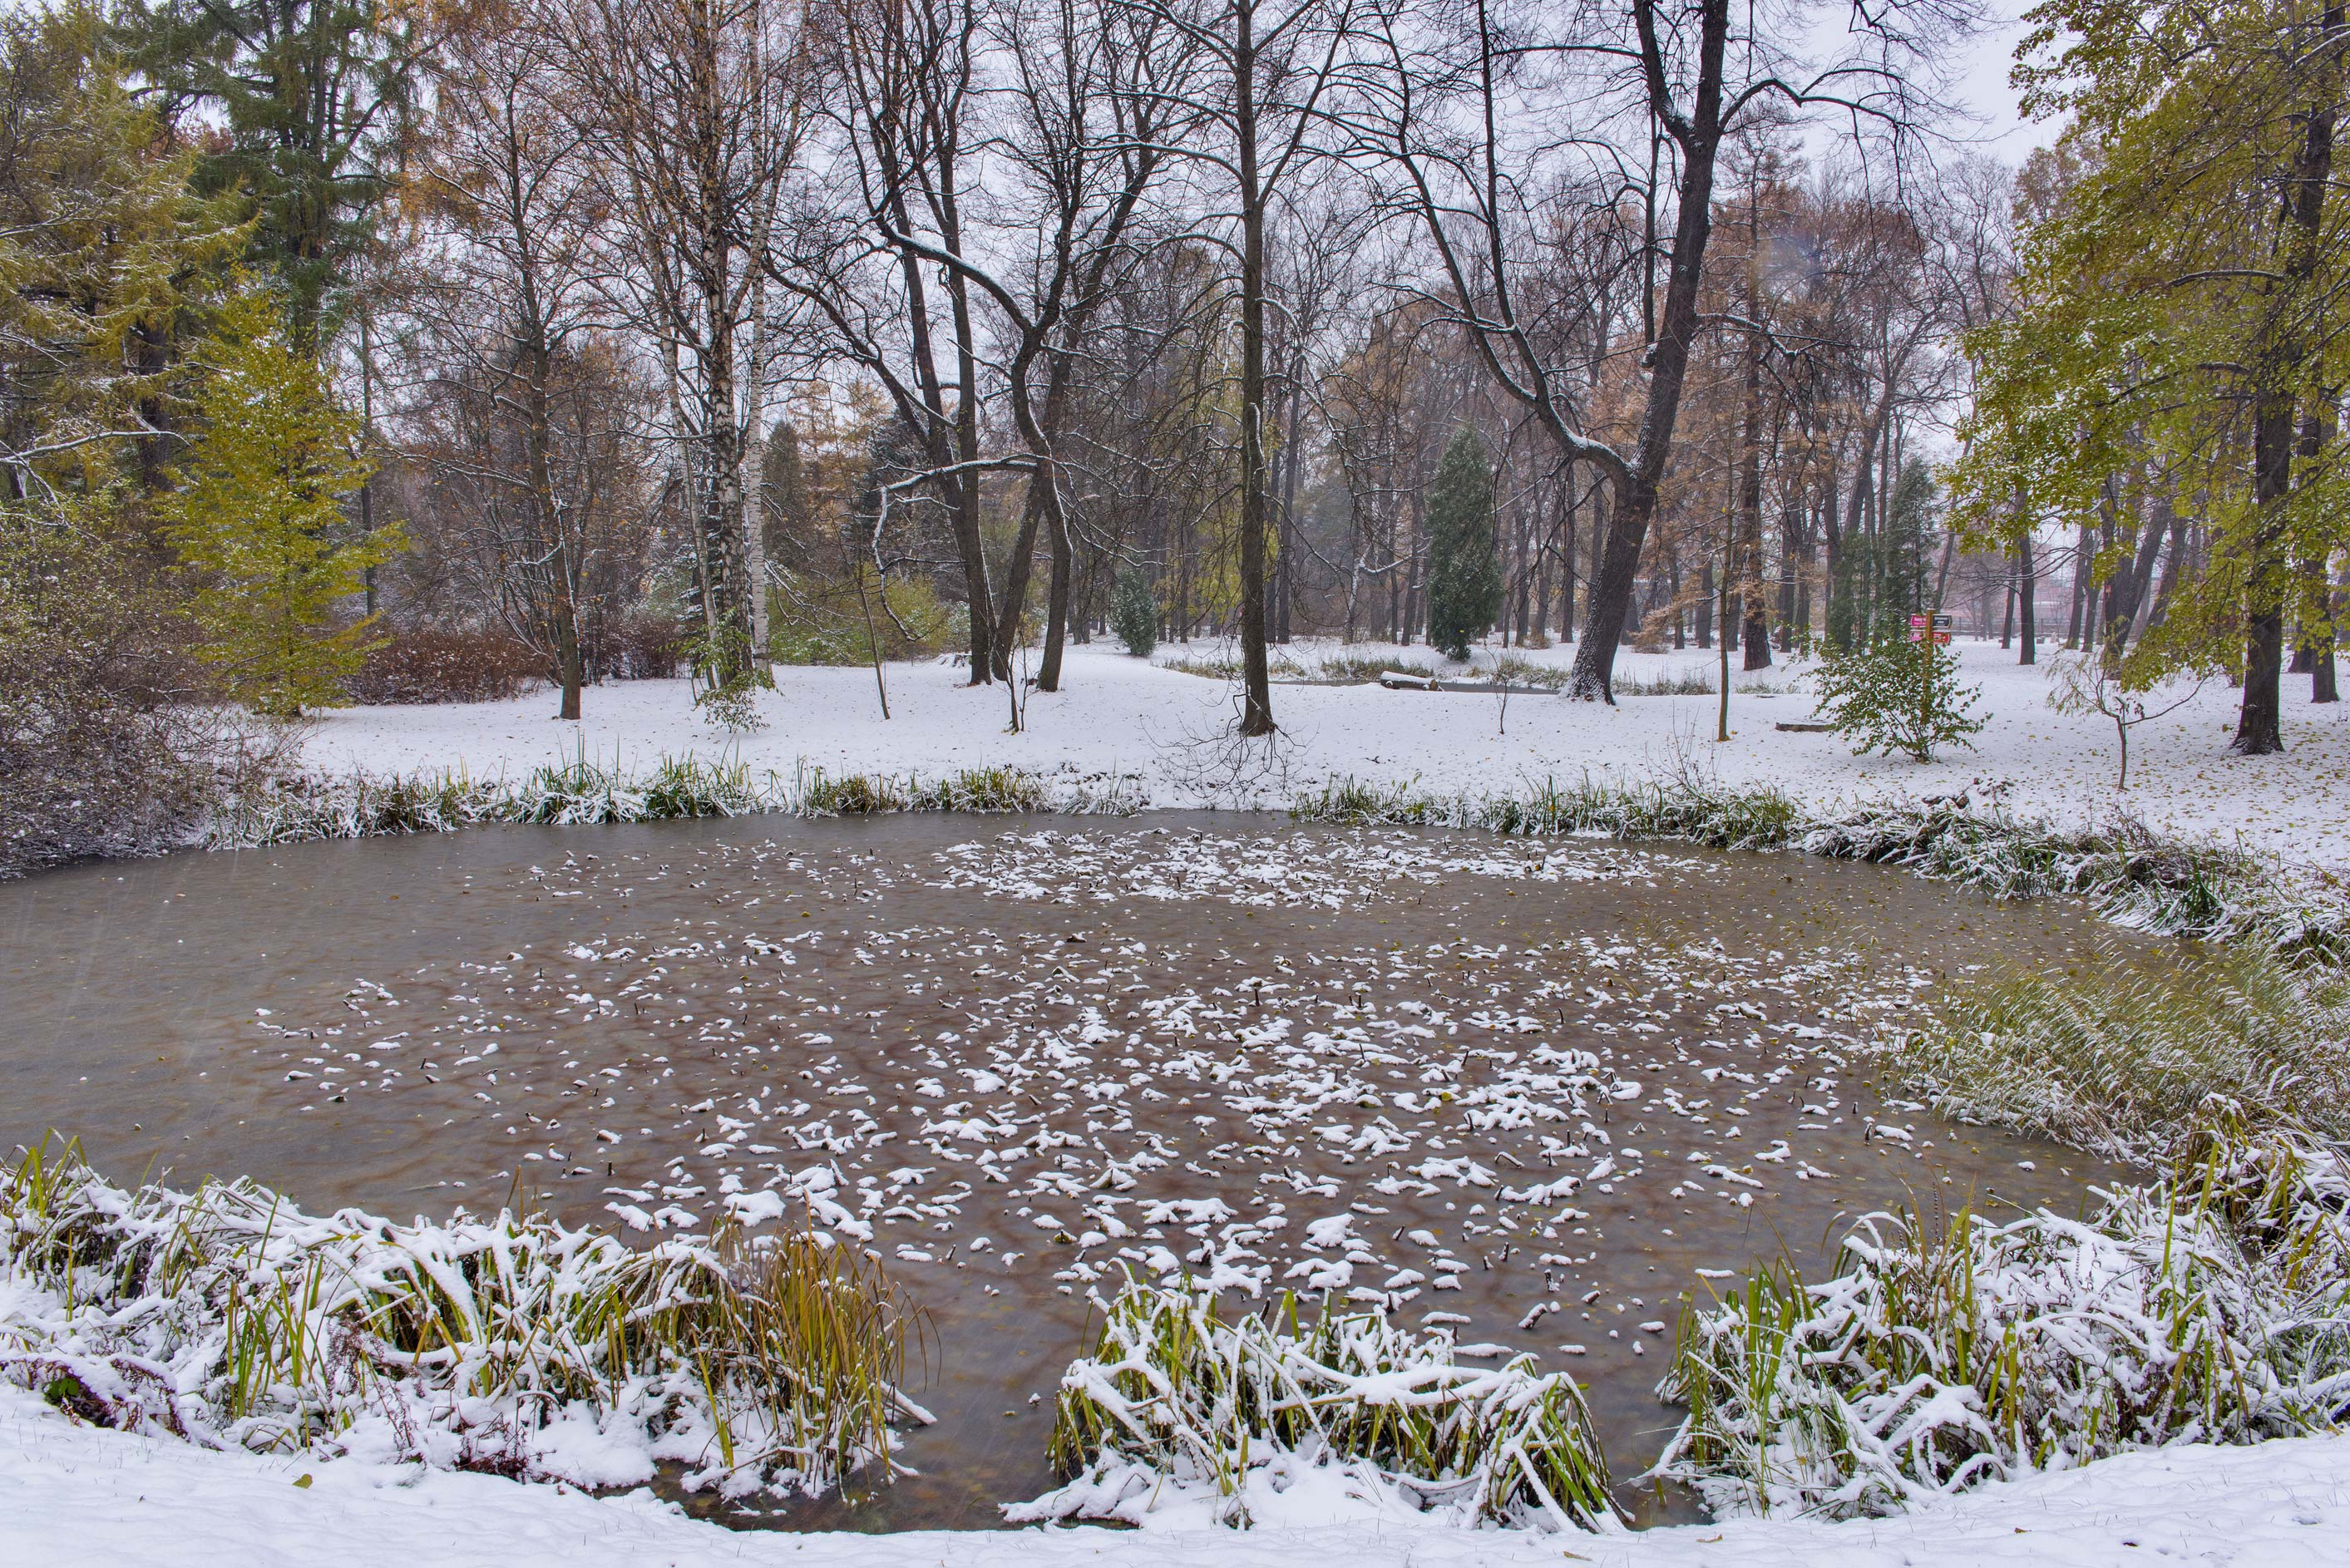 Lily pond in snow in Botanic Gardens of Komarov Botanical Institute. St.Petersburg, Russia